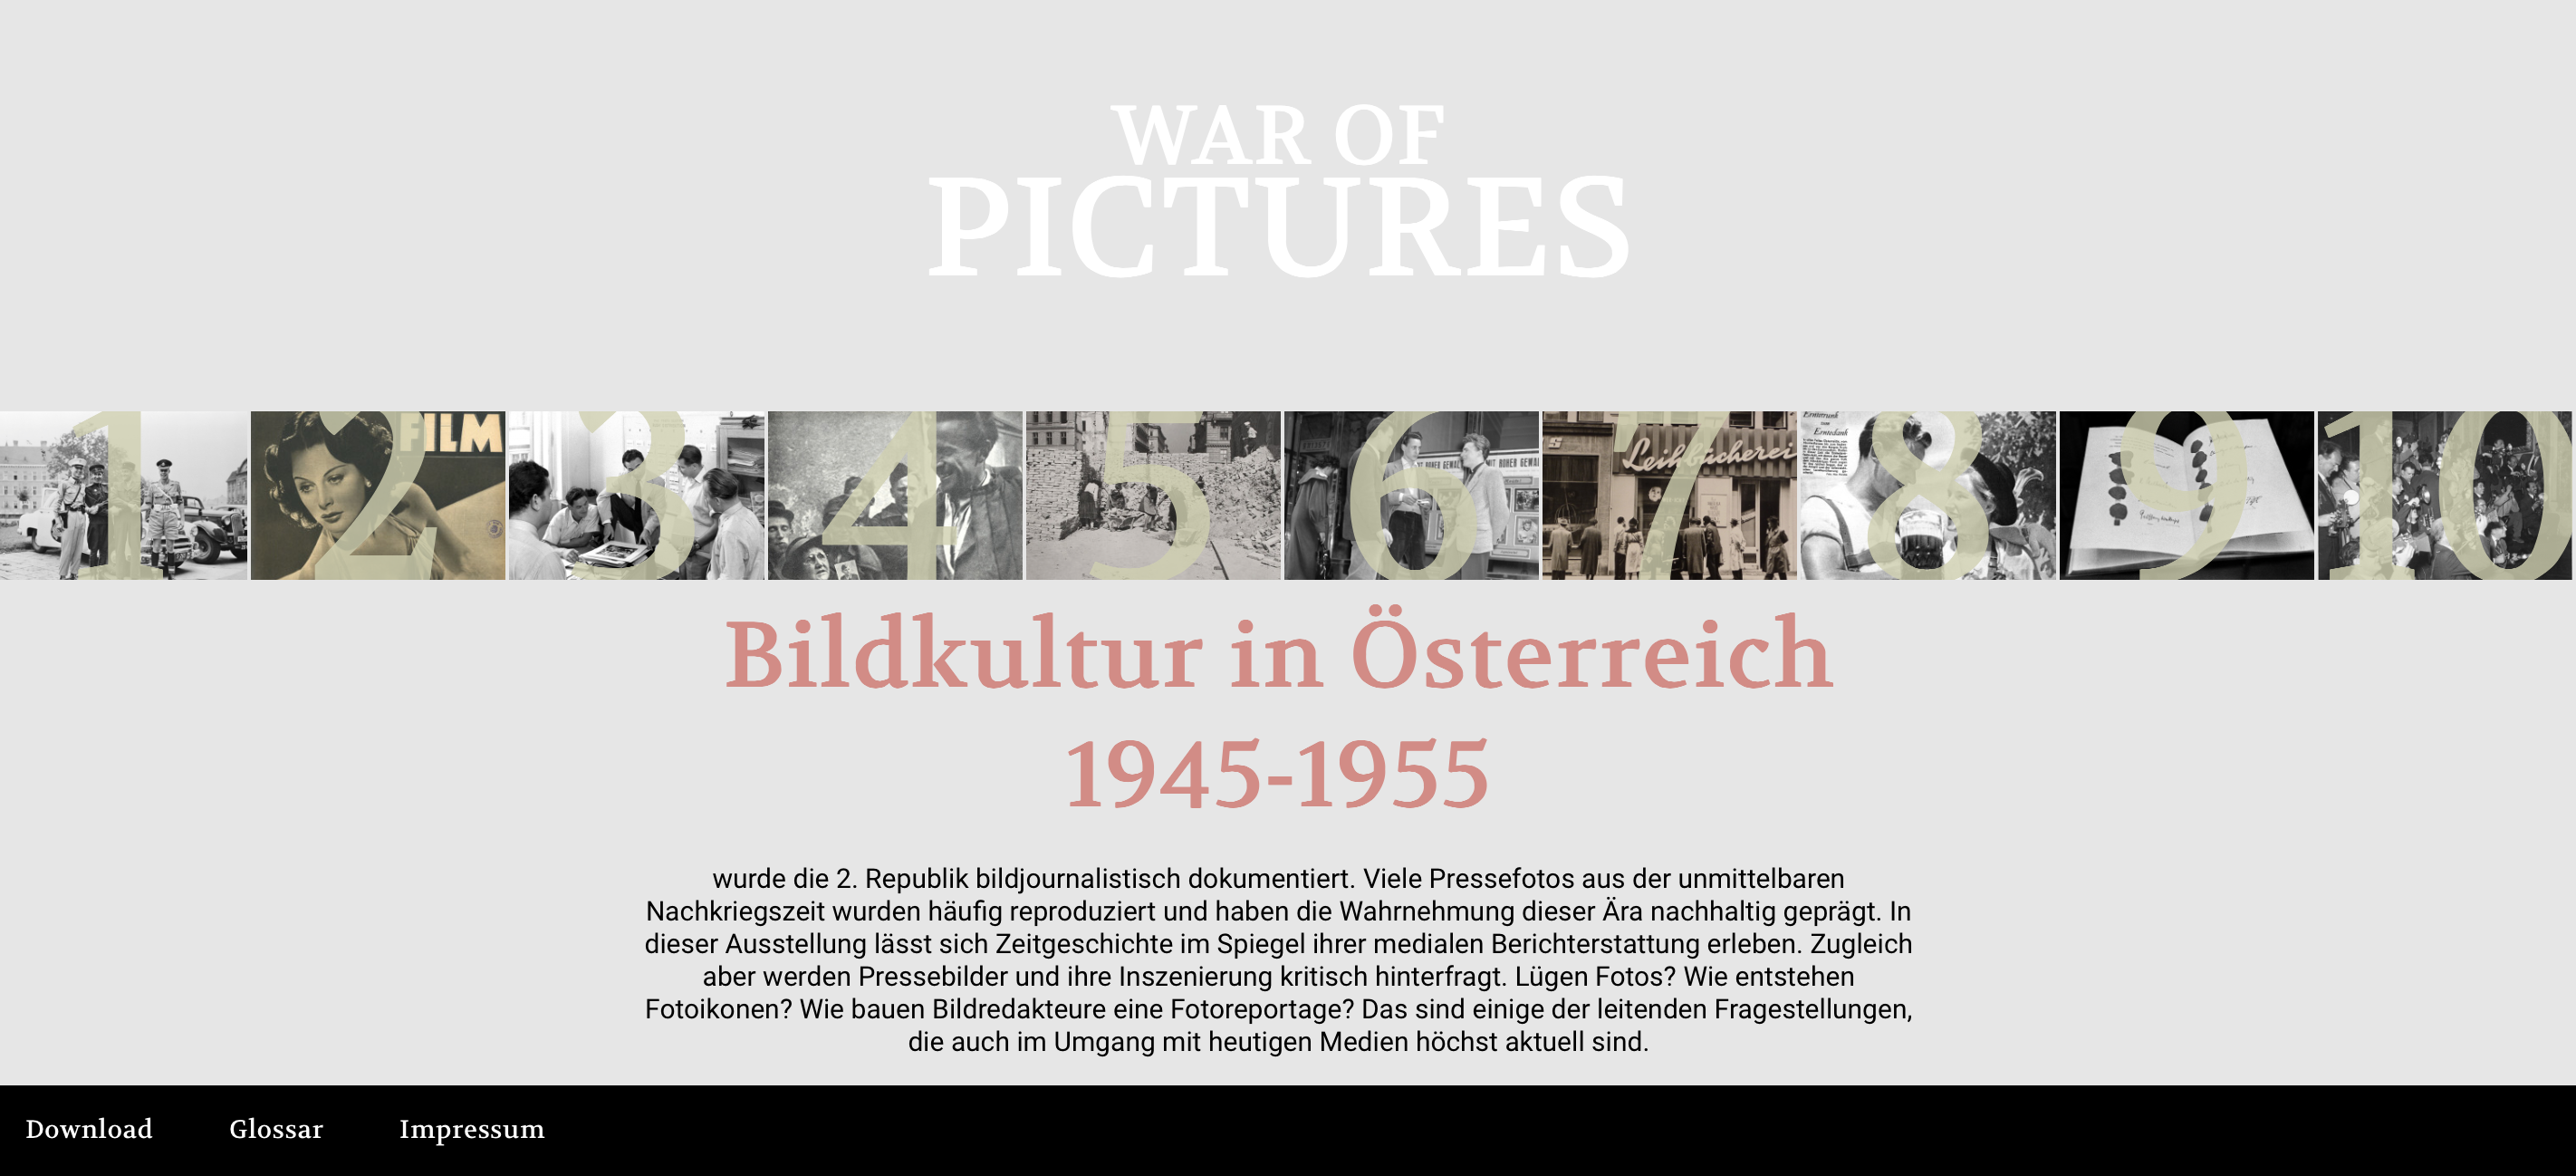 war of pictures_online ausstellung_wesearch